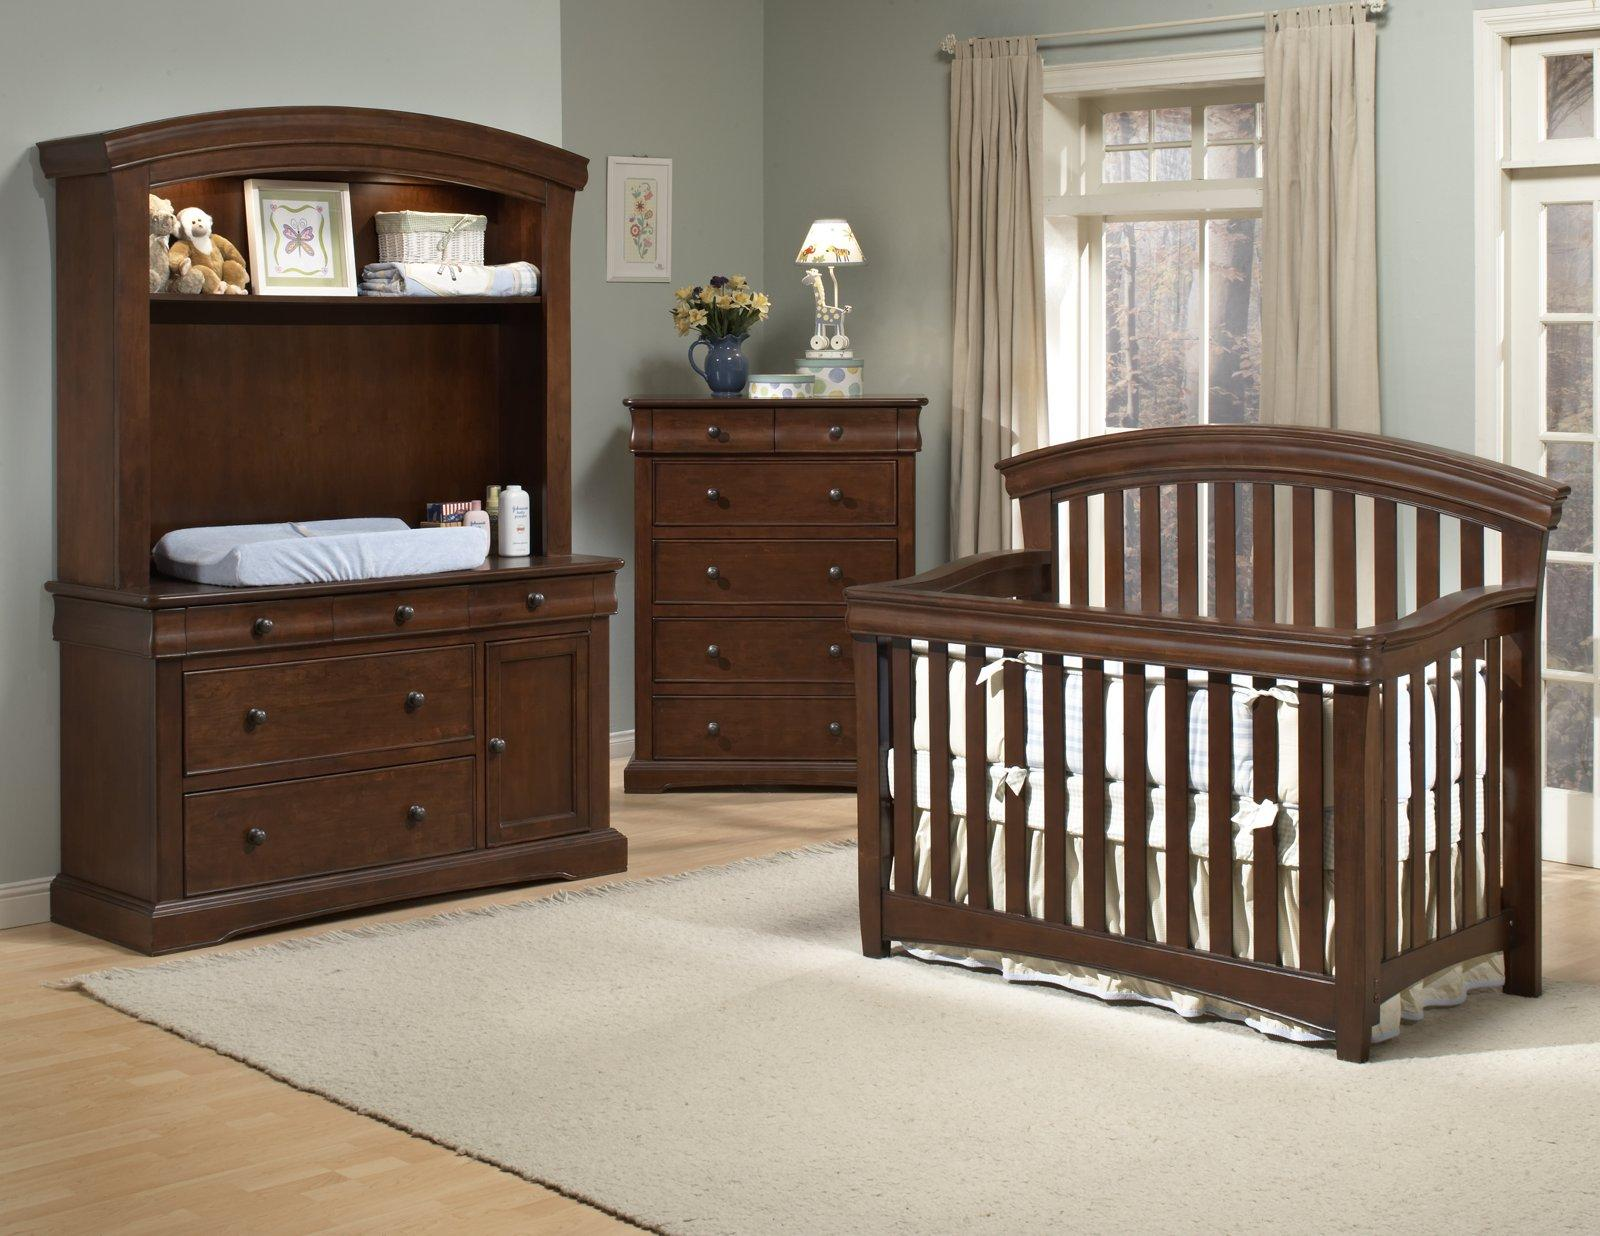 item darvin pine cribs cr westwood crib number pr products panel ridge cas convertible design furniture